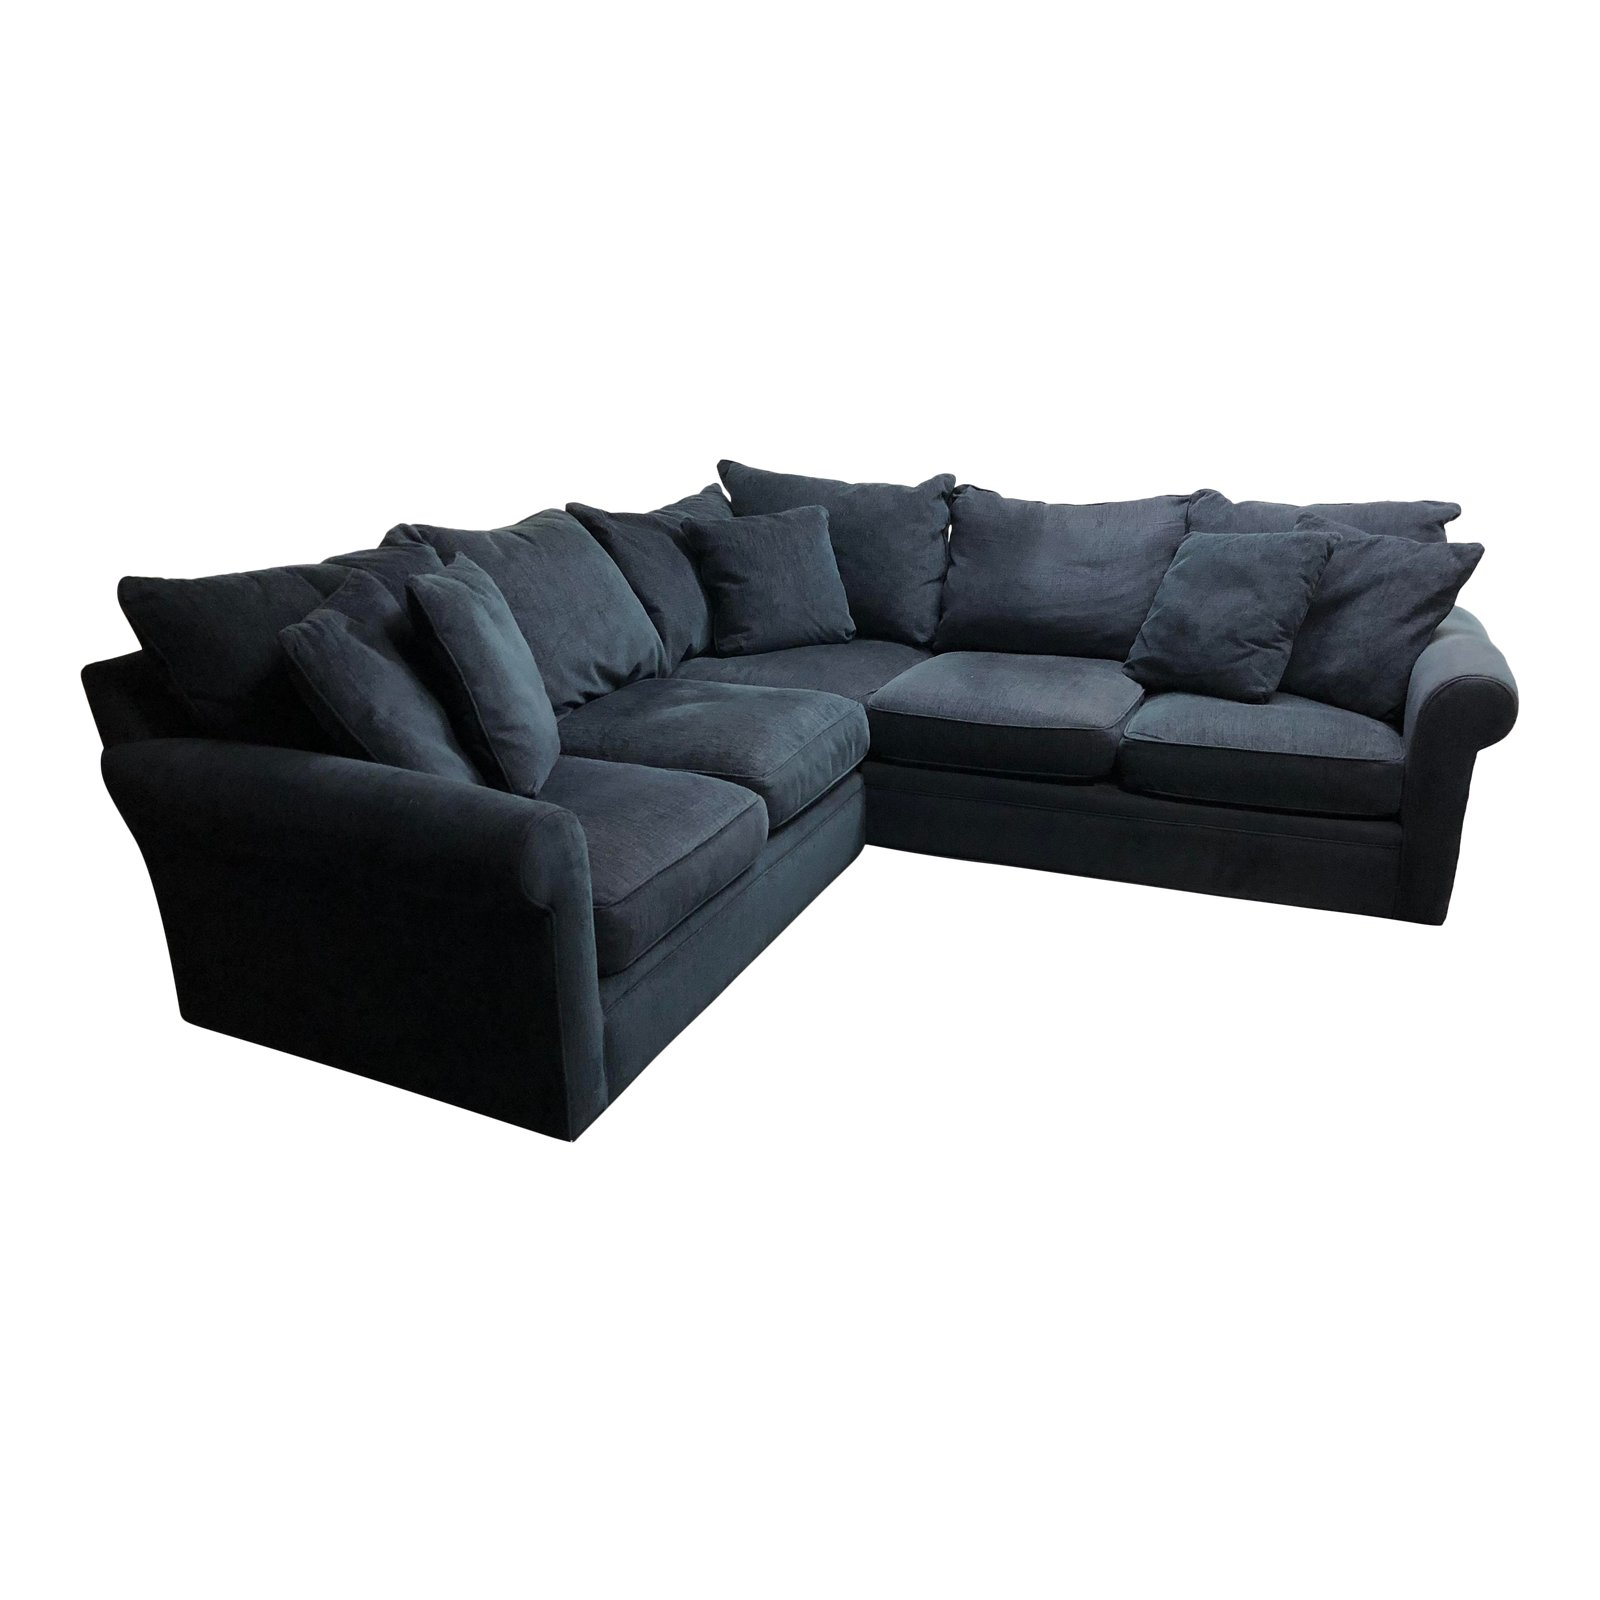 Attirant Three Pieces Modern Concepts Sectional. Original Price: $2,574.00